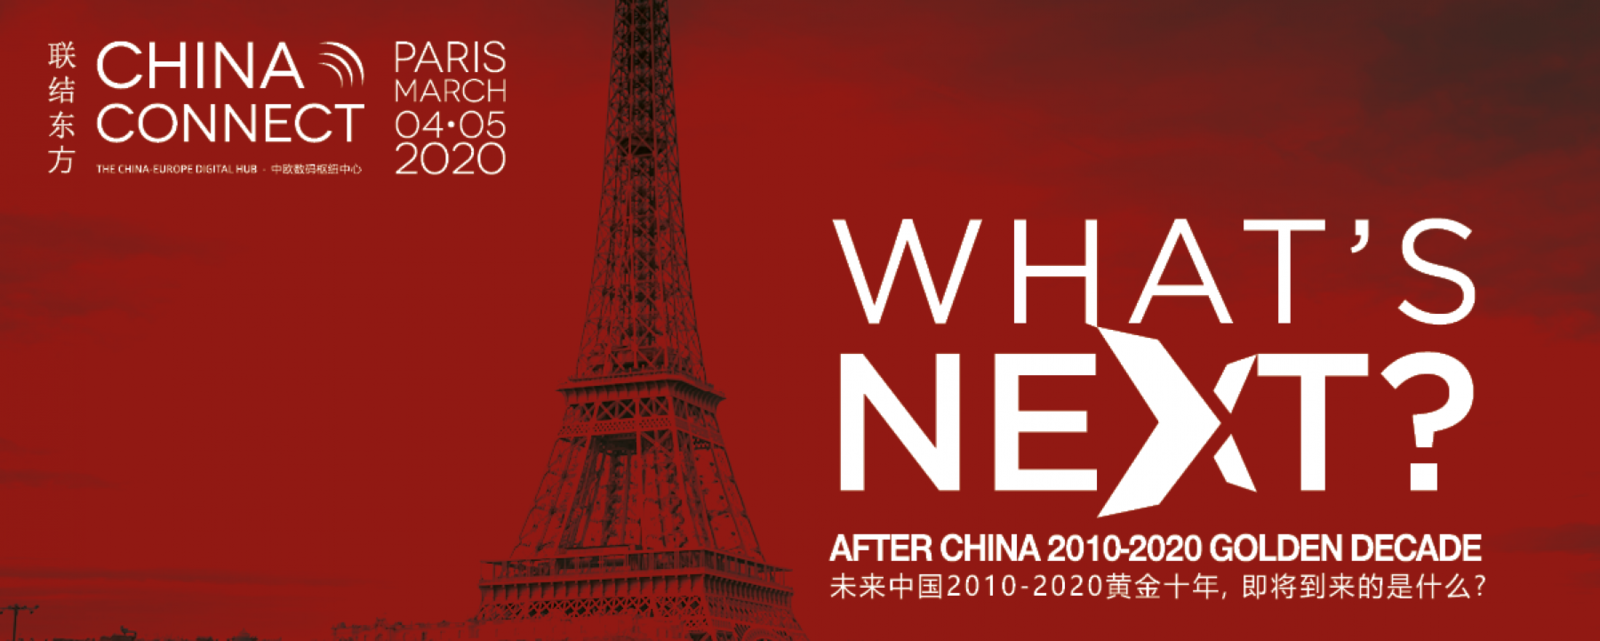 Marketing Event : CHINA CONNECT PARIS - 4 et 5 mars 2020